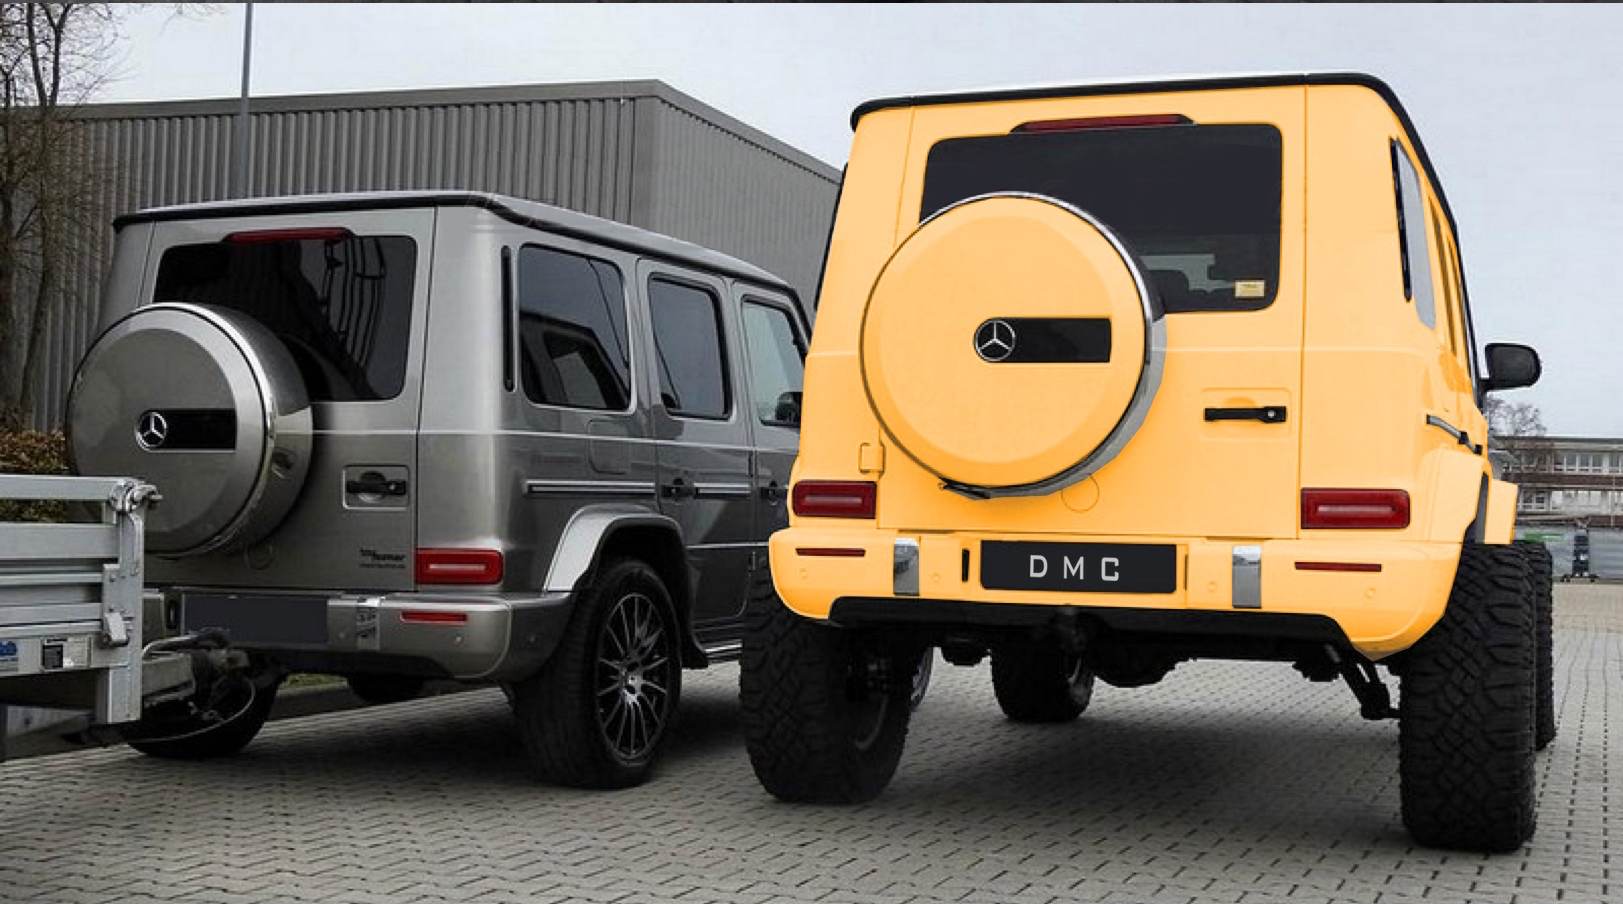 Mercedes Benz Amg W464 W463a Rhd 4 4 Lift Kit Bolt On Portal For G Class G500 G63 Dmc